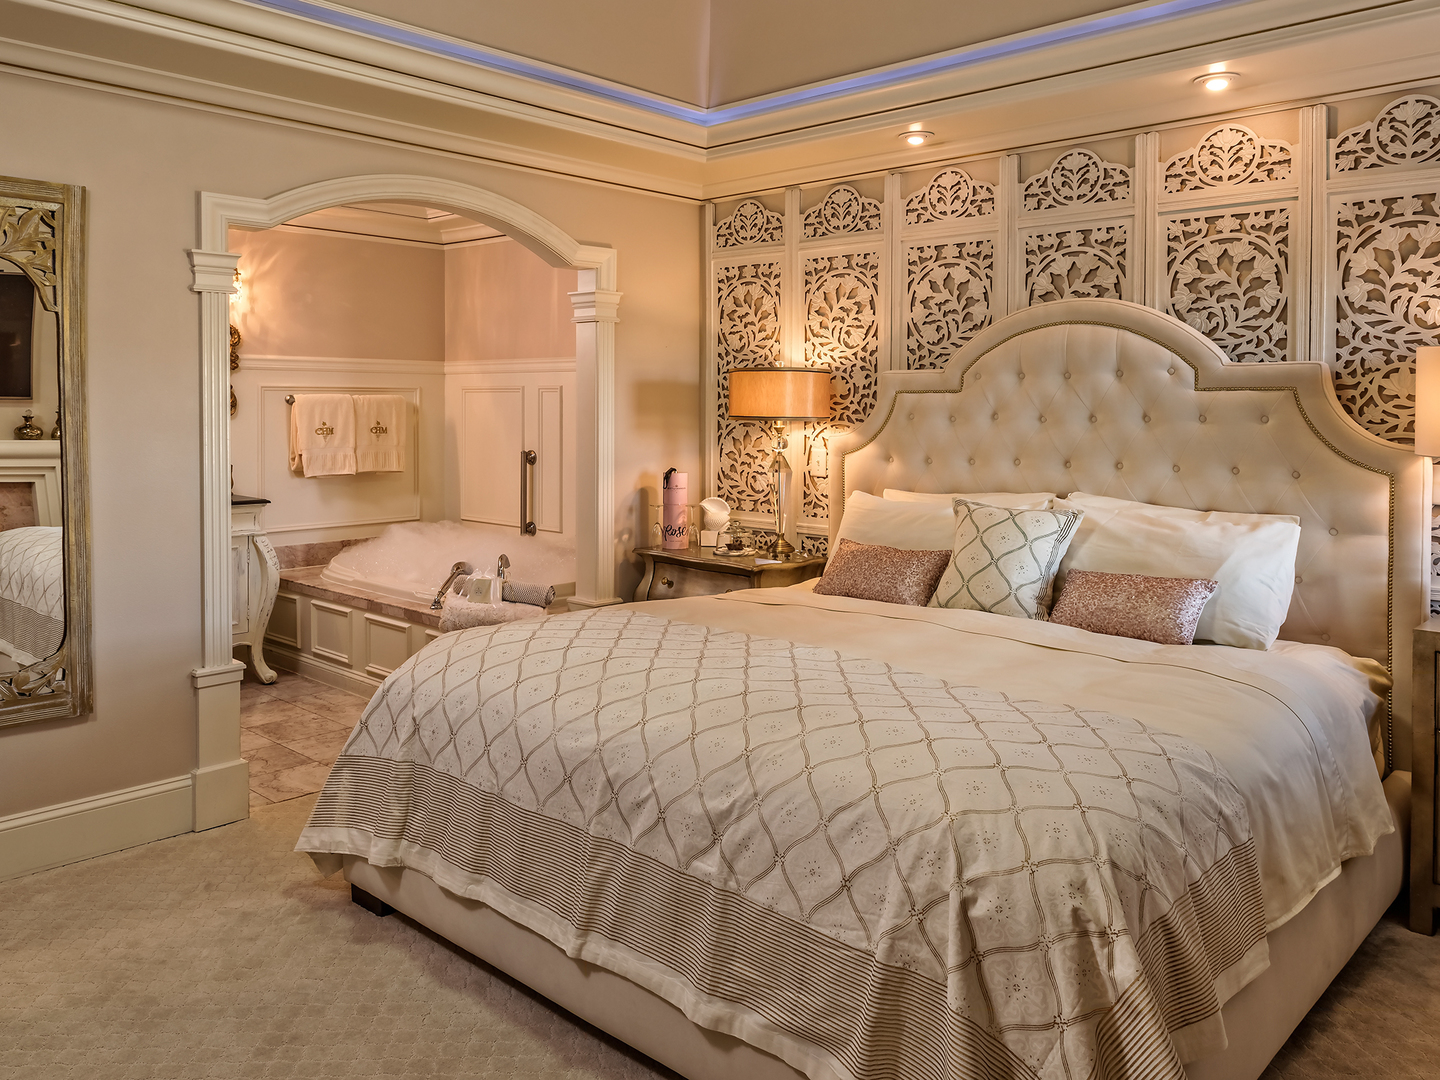 A bedroom with a large bed in a hotel room at Cameo Heights Mansion.